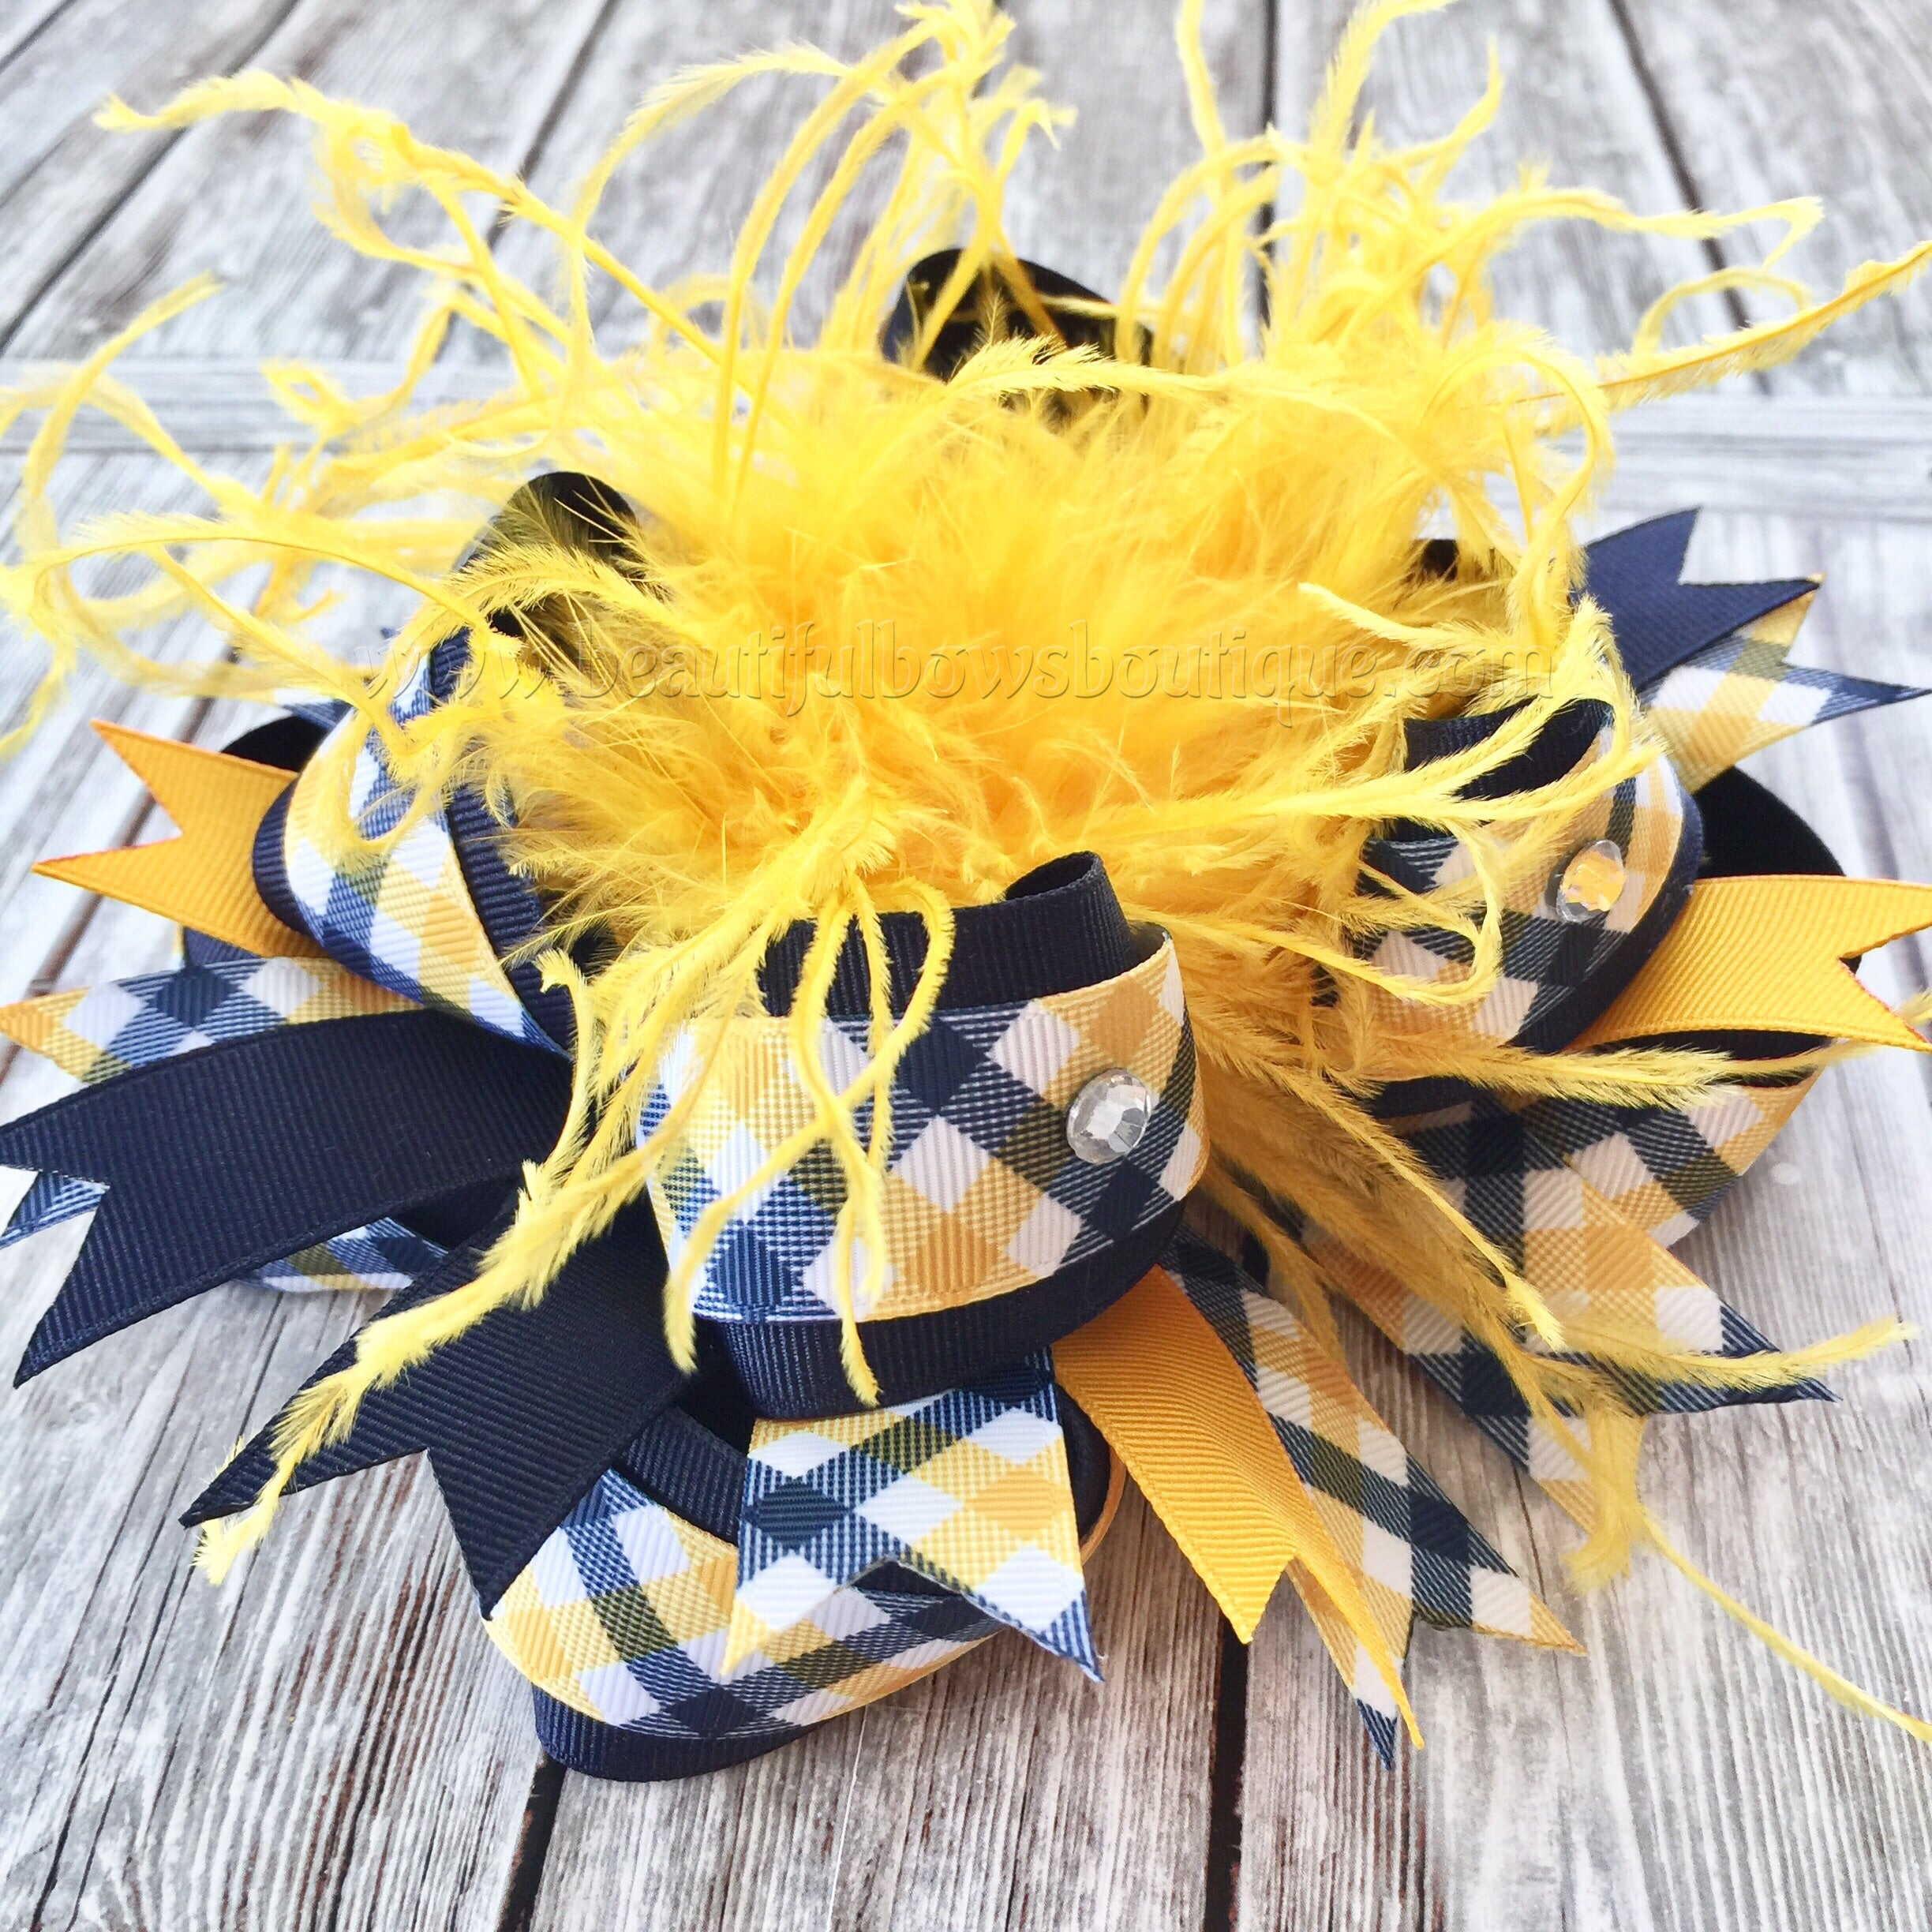 Navy Blue Bow Custom made Bow-Handmade bows for babies-Uniform Bows-School Uniform Bows-Baby Bow-Toddler Bow Handmade bows for Girls